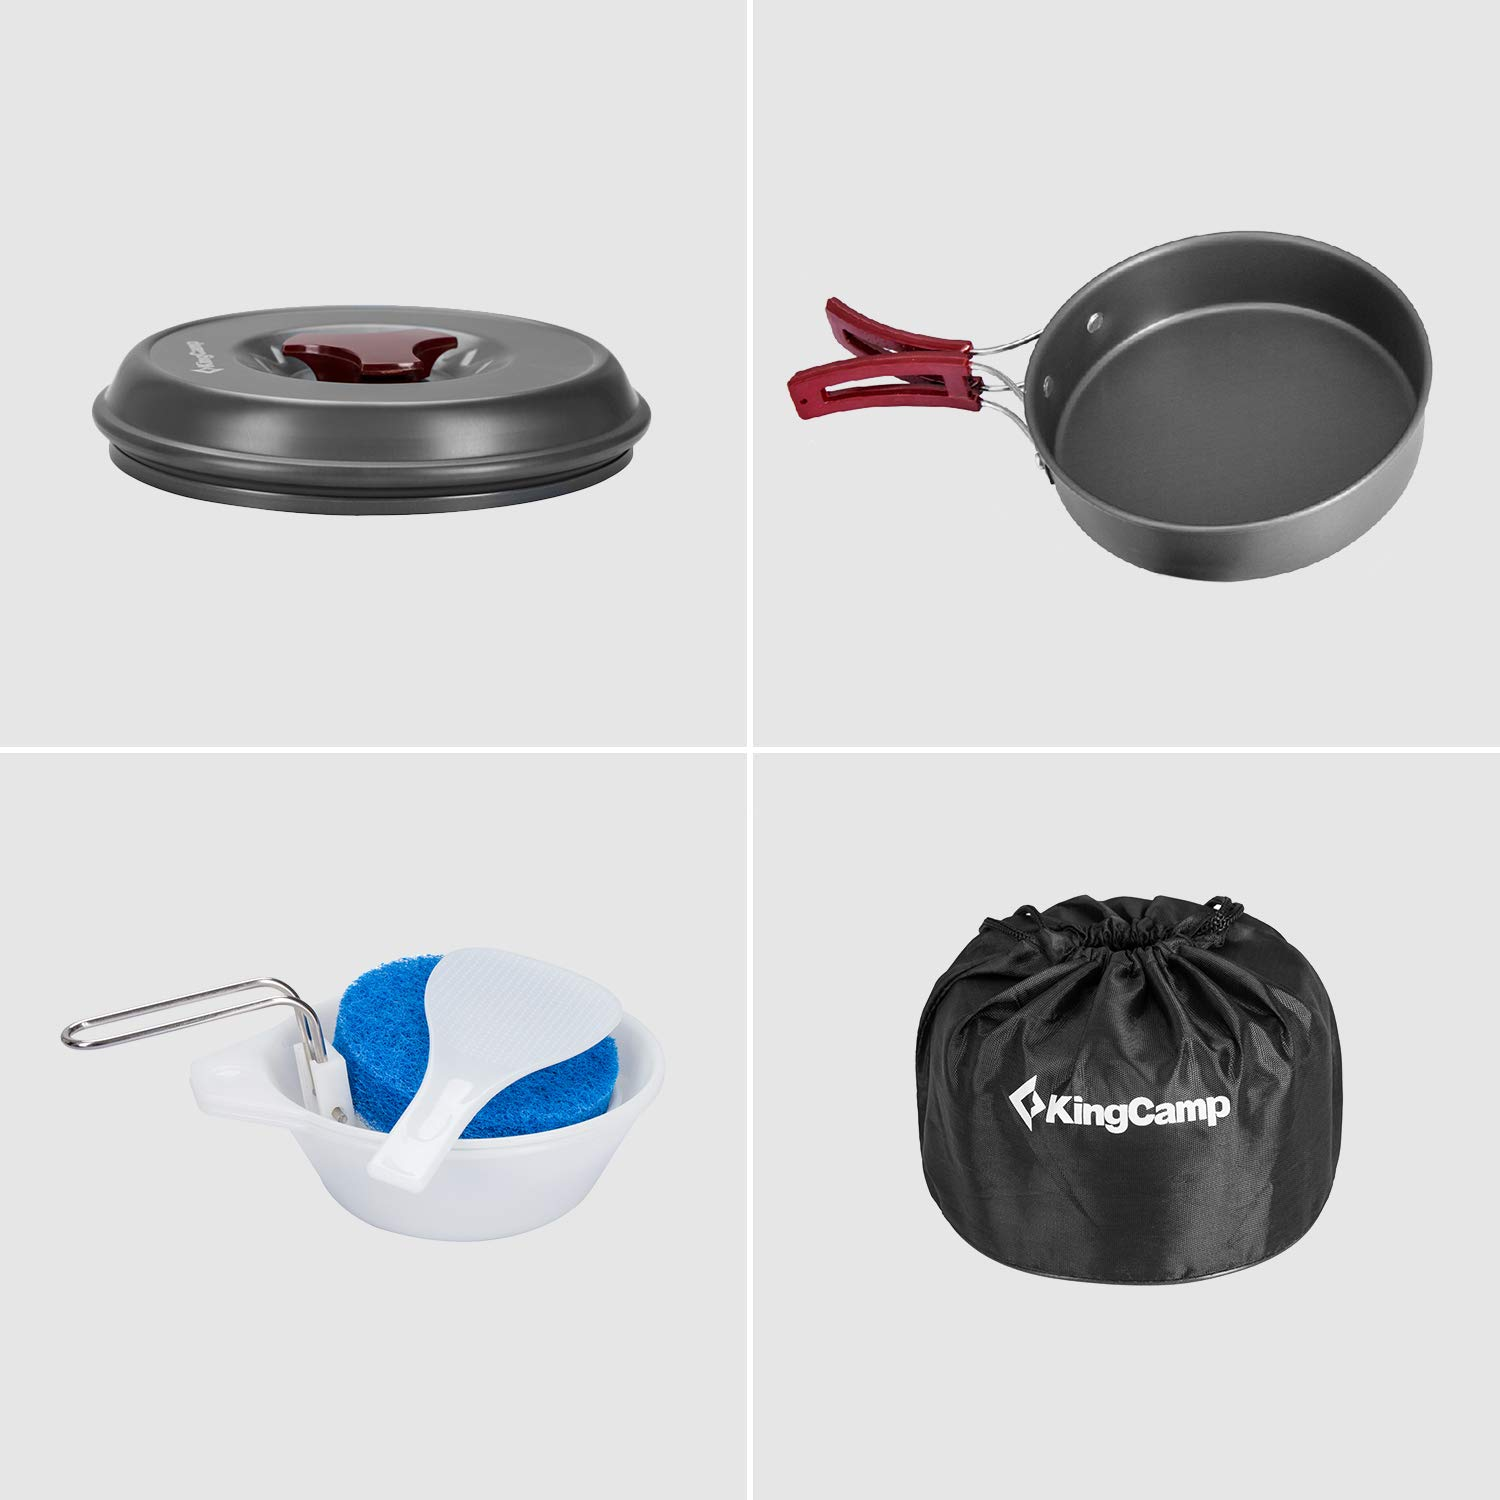 KingCamp 5//8//17 Pcs Camping Cookware Set Pot Frying Pan Kettle Teapot Backpacking Outdoors Cooking Equipment Cookset for Family